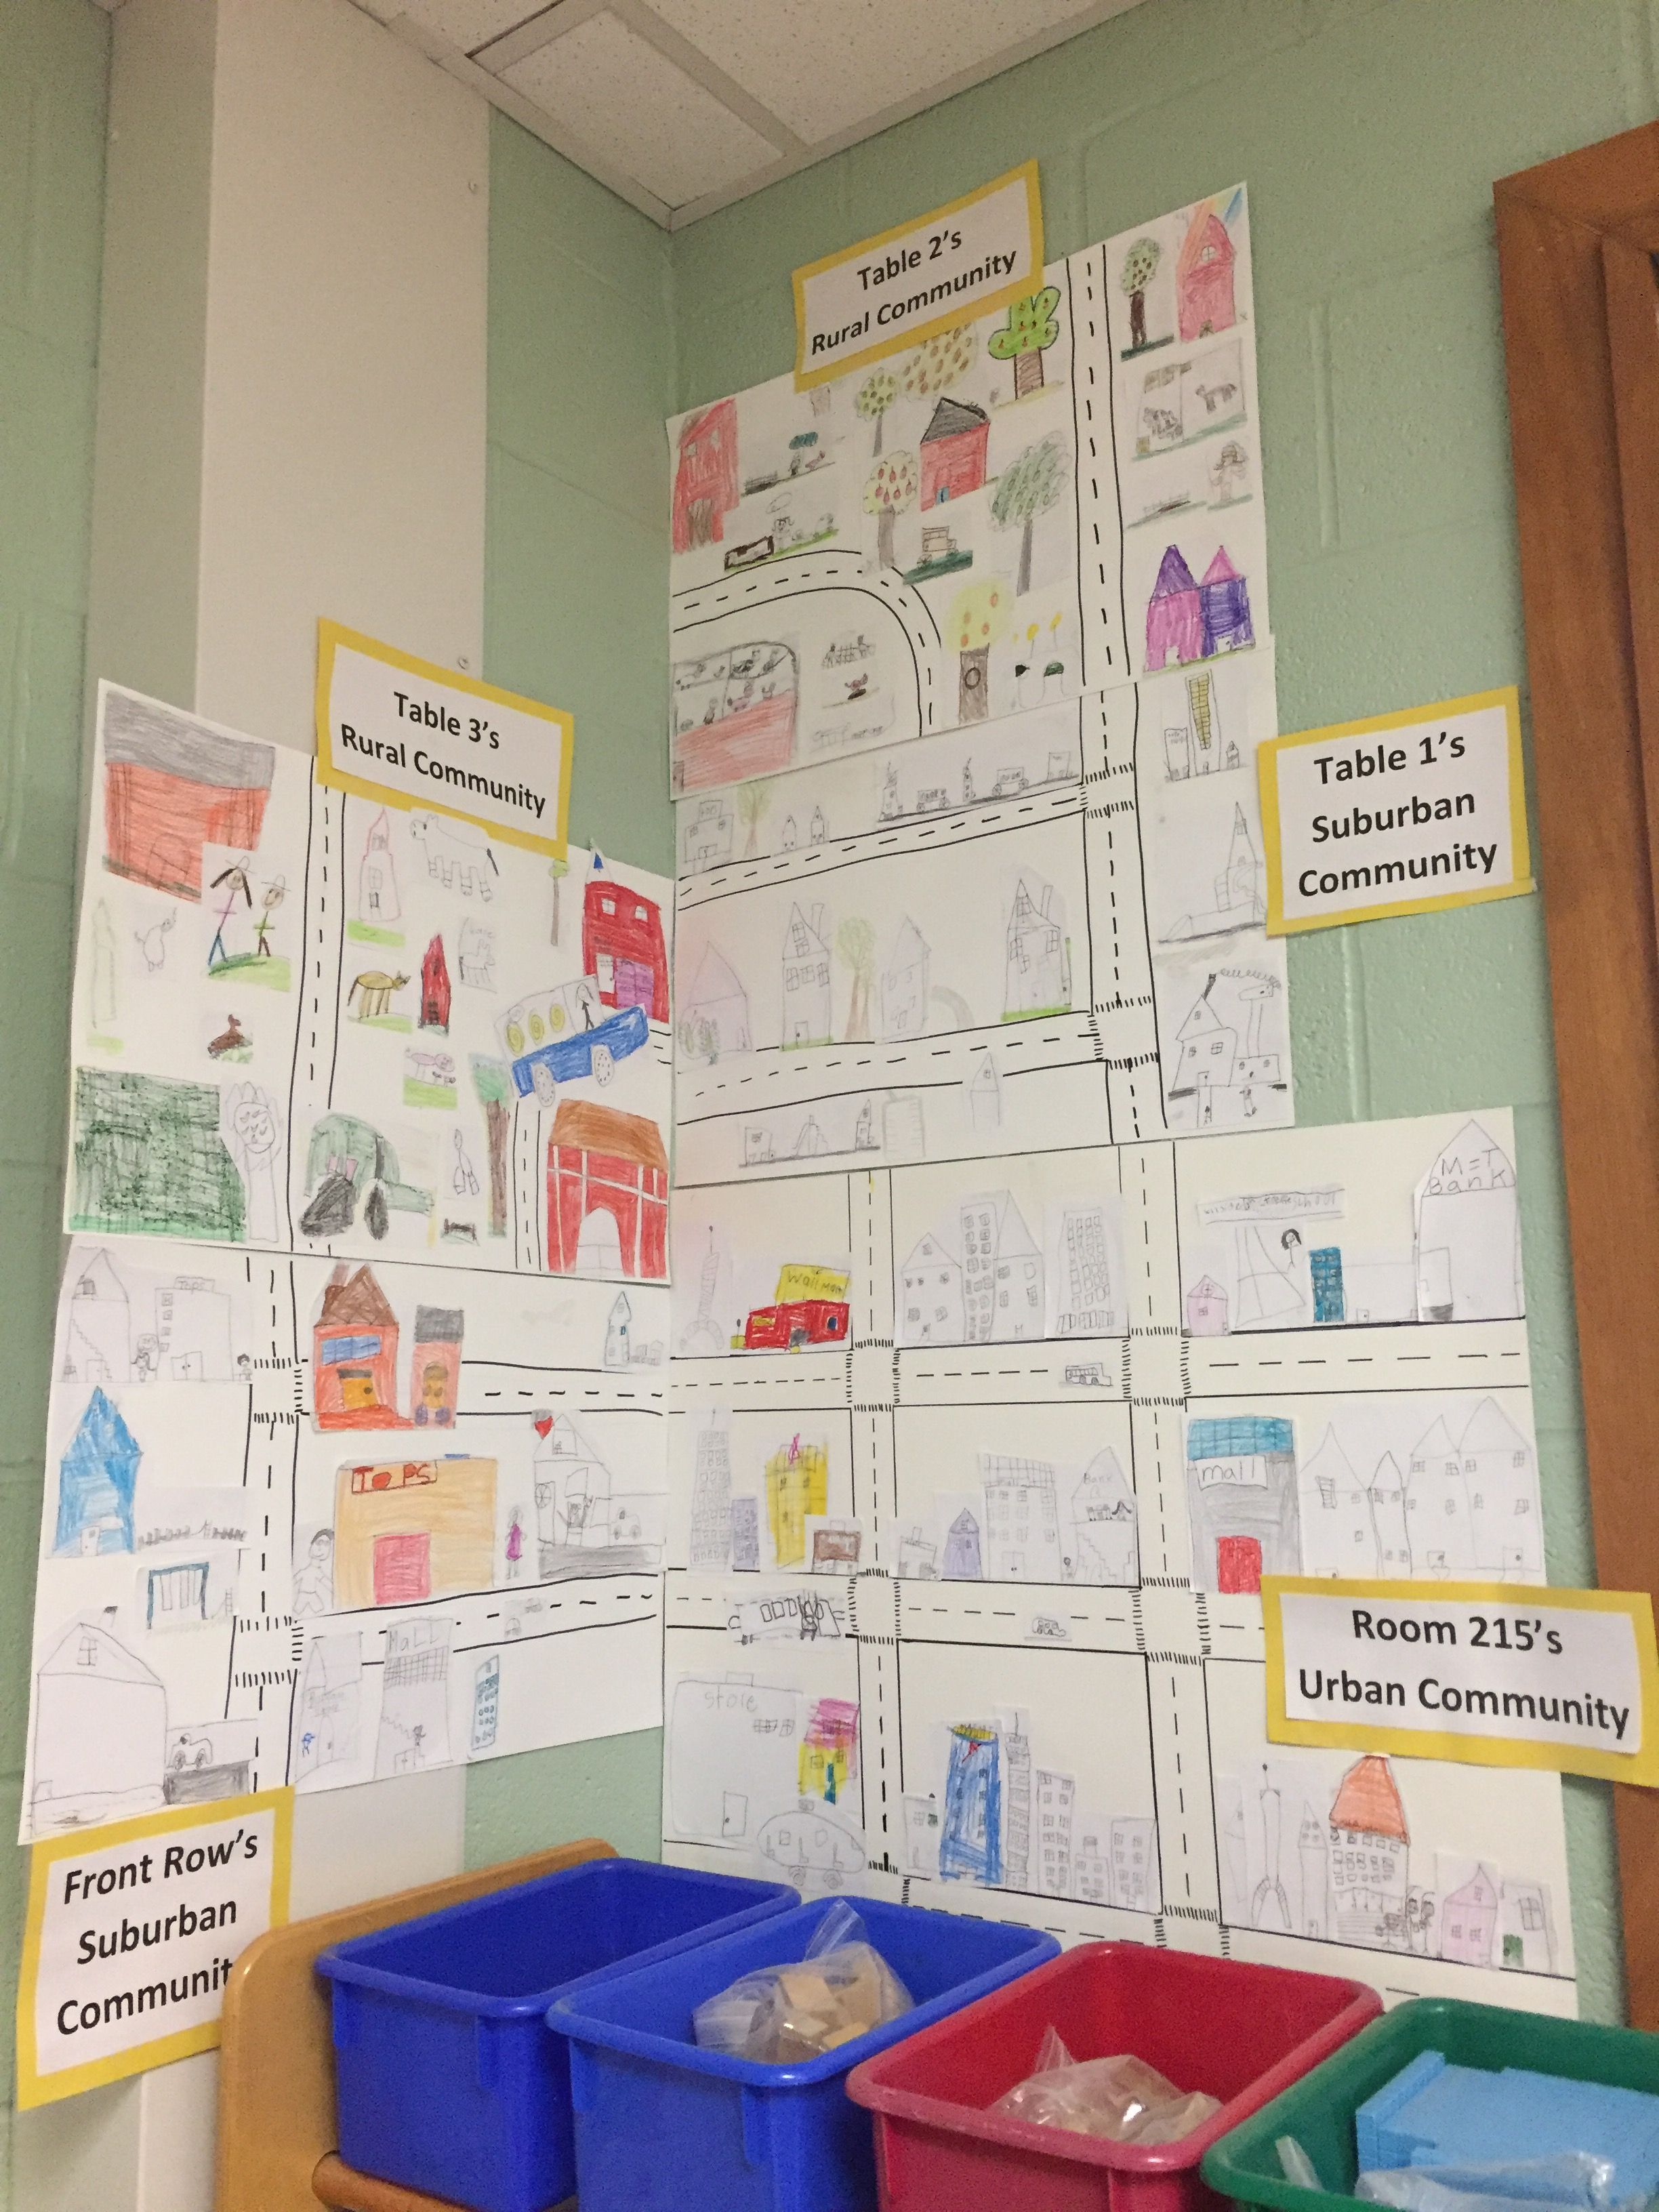 Urban Rural And Suburban Community Class Project In A